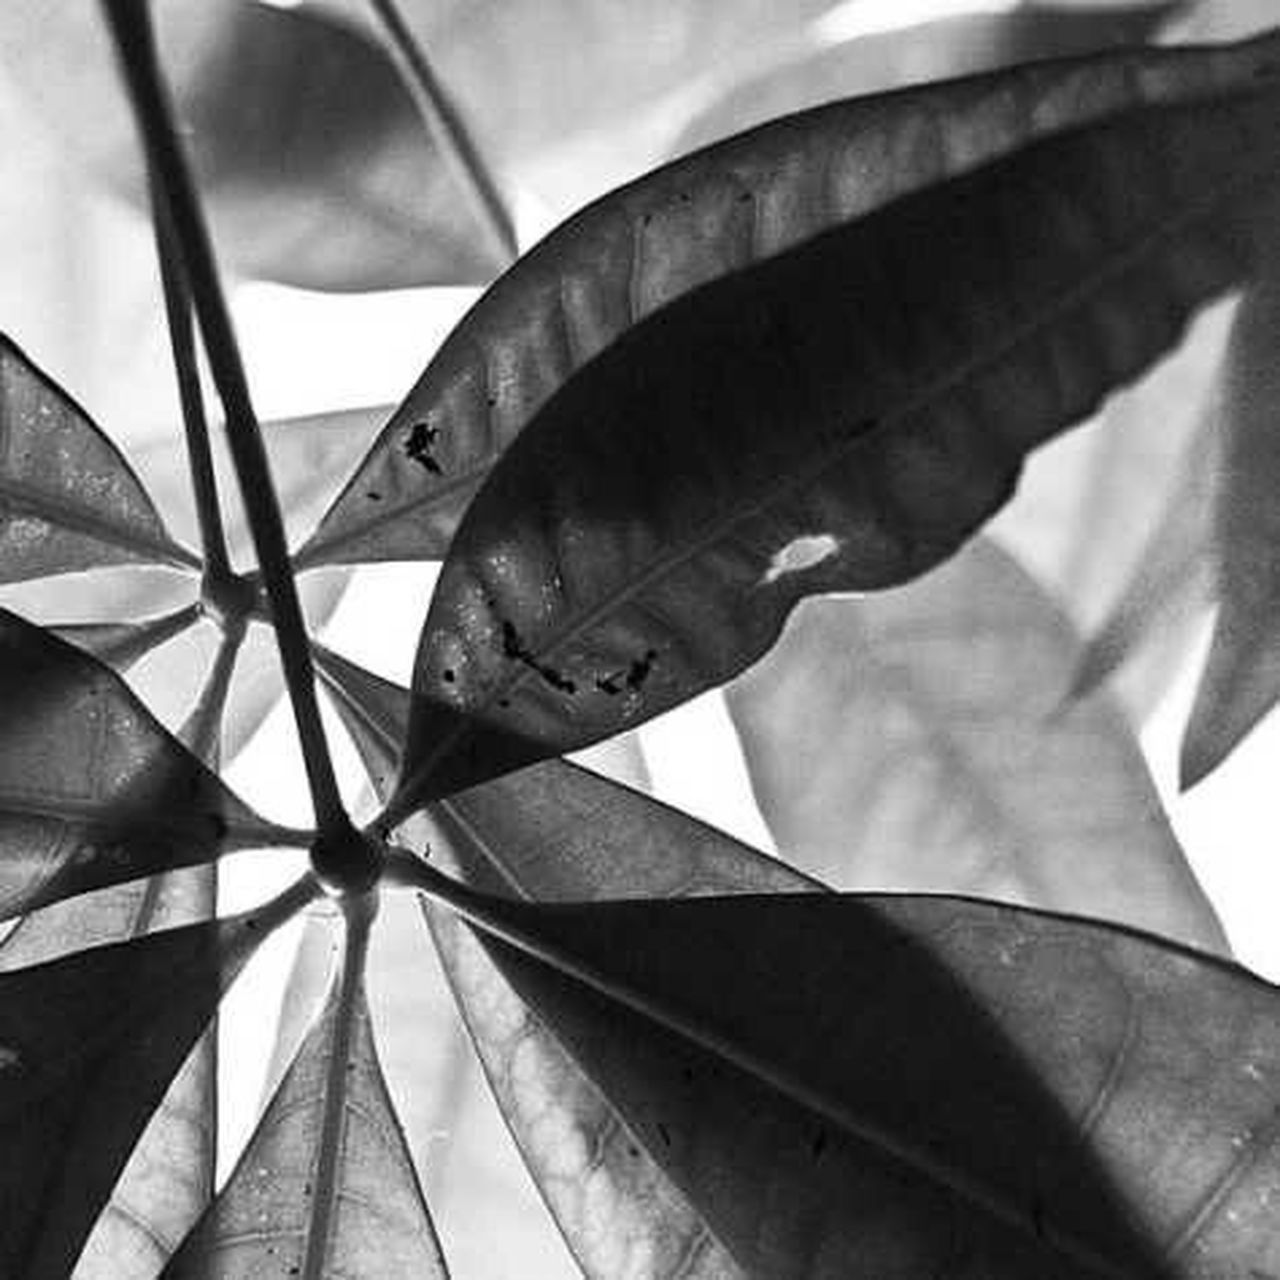 leaf, shadow, no people, close-up, day, outdoors